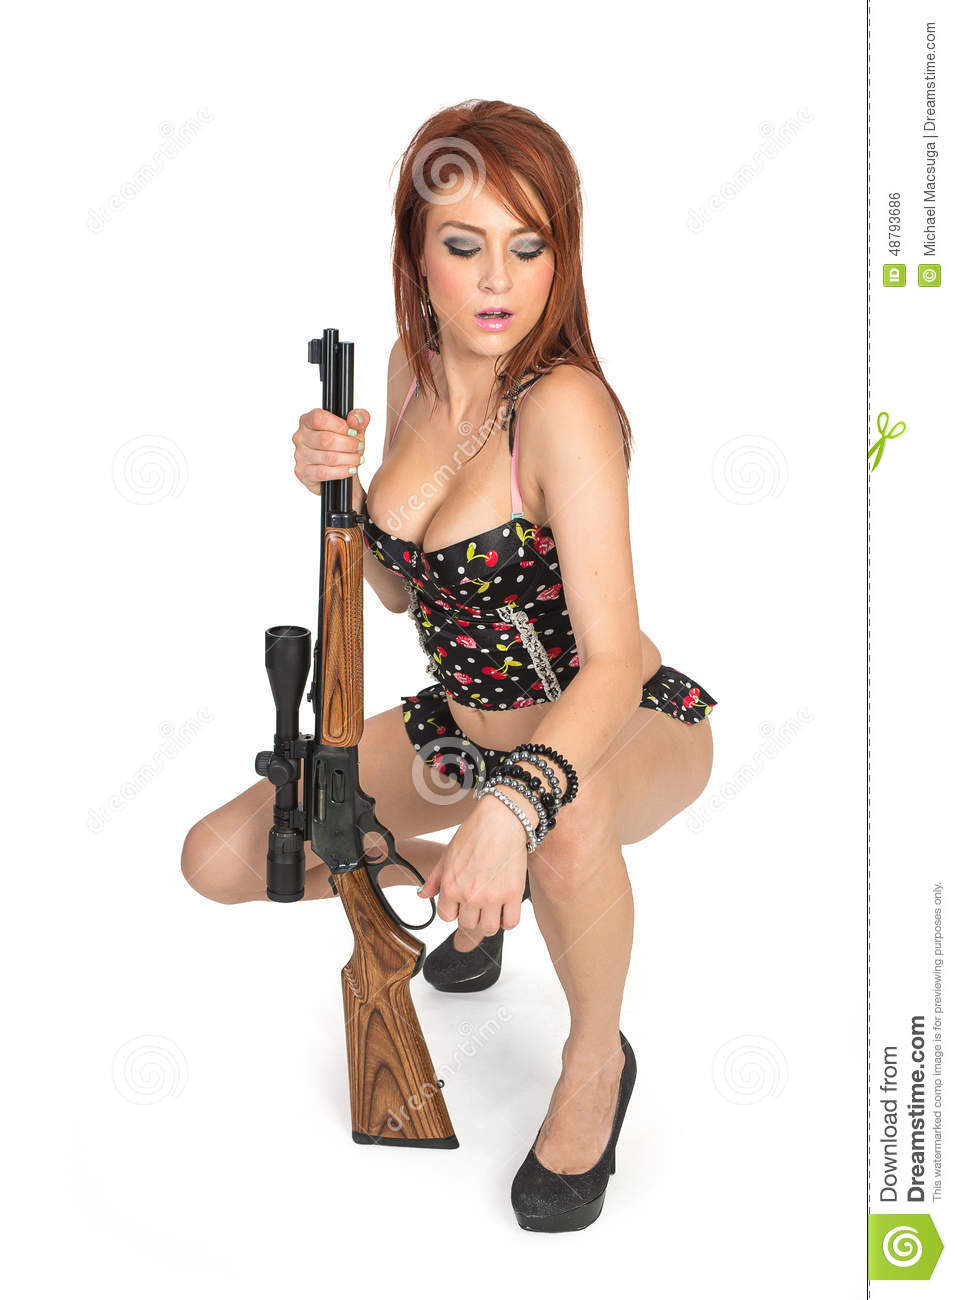 guns with Hot girls